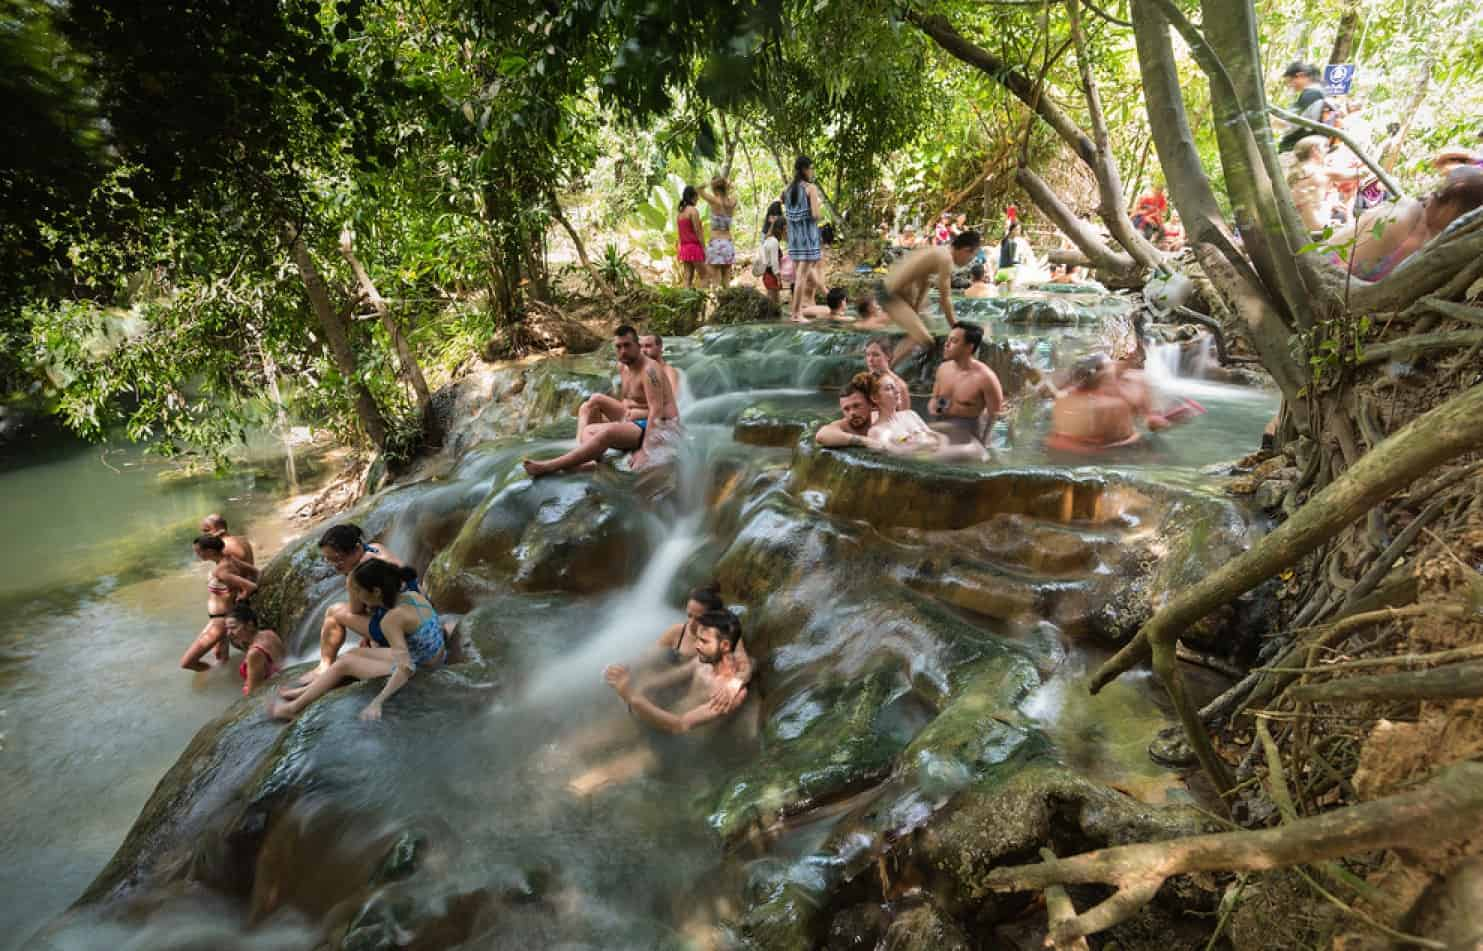 stock-photo-krabi-thailand-mar-people-soak-and-relax-in-hot-mineral-waterfall-famous-place-in-385605037